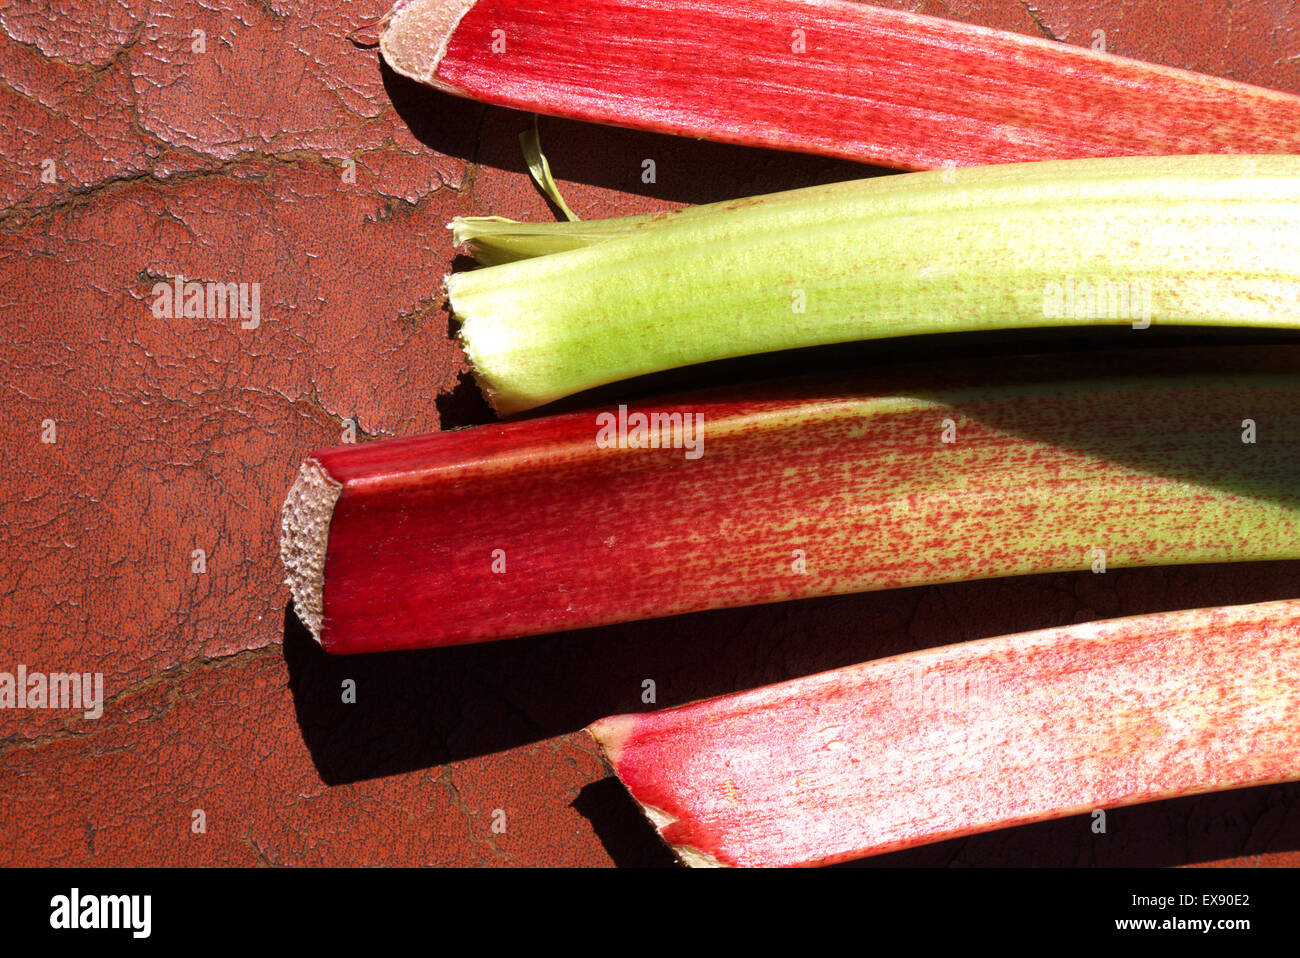 A stylized image of showing several cut lenghs rhubarb - Stock Image